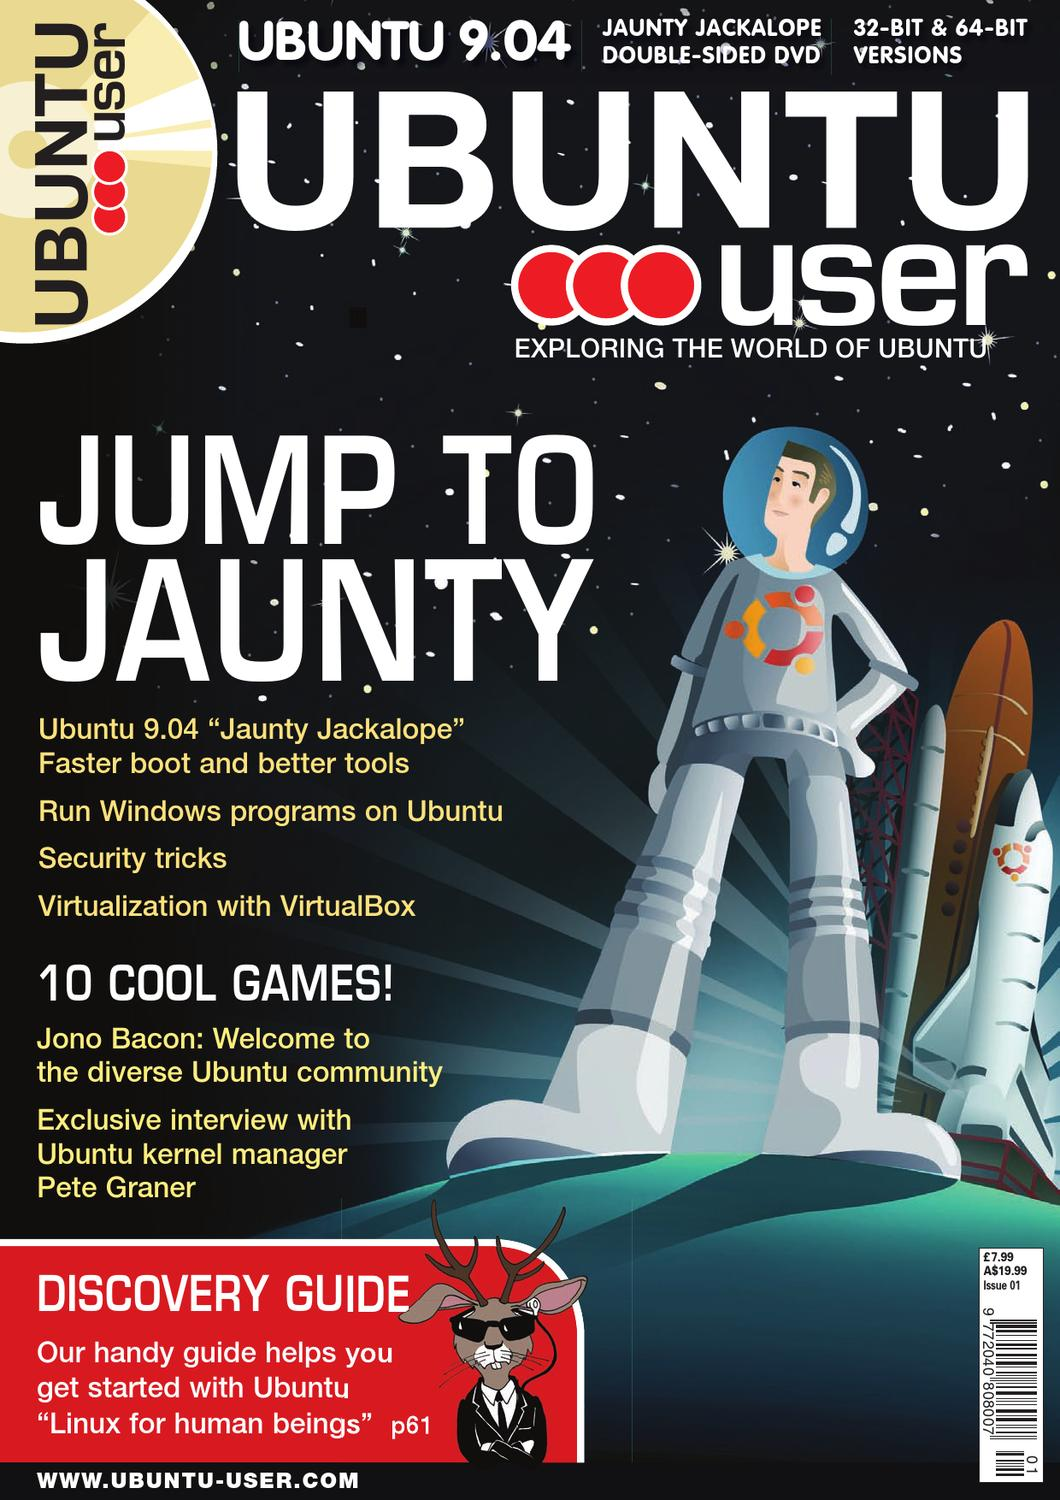 Ubuntu User Magazine Vol 01 by Enso Mugno - issuu on